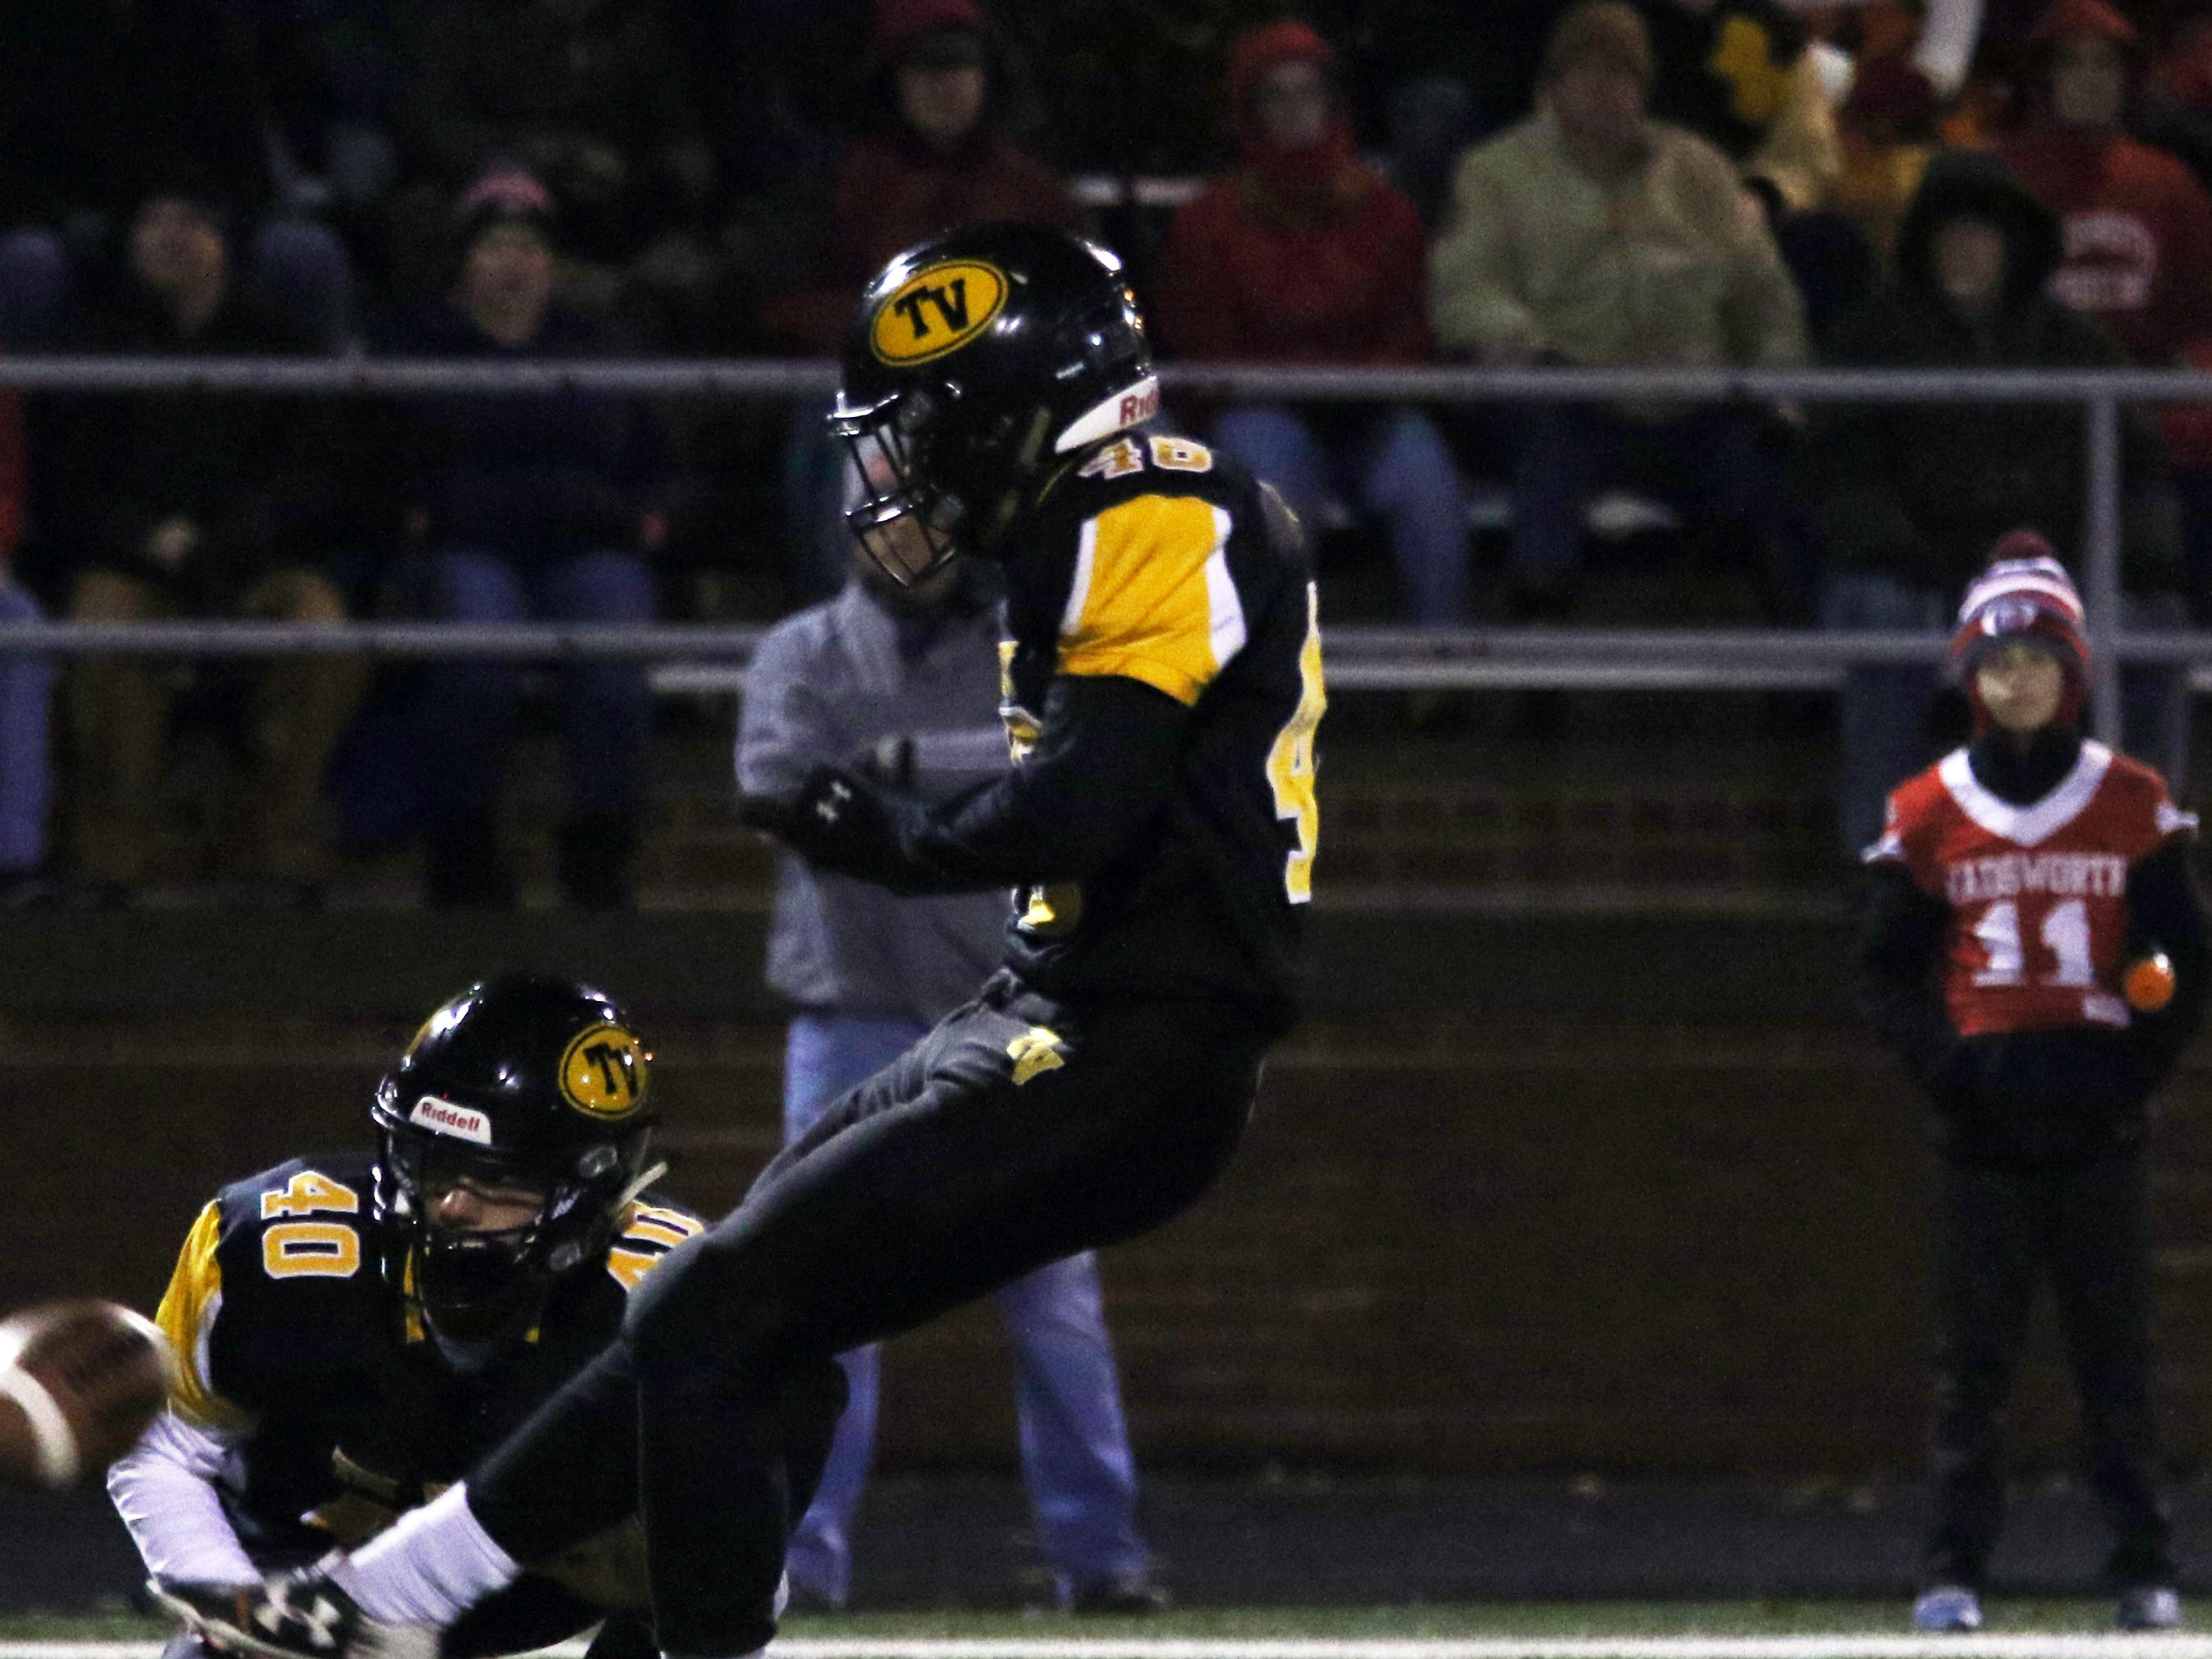 Tri-Valley's Trey Cannon kicks a field goal against Wadsworth.